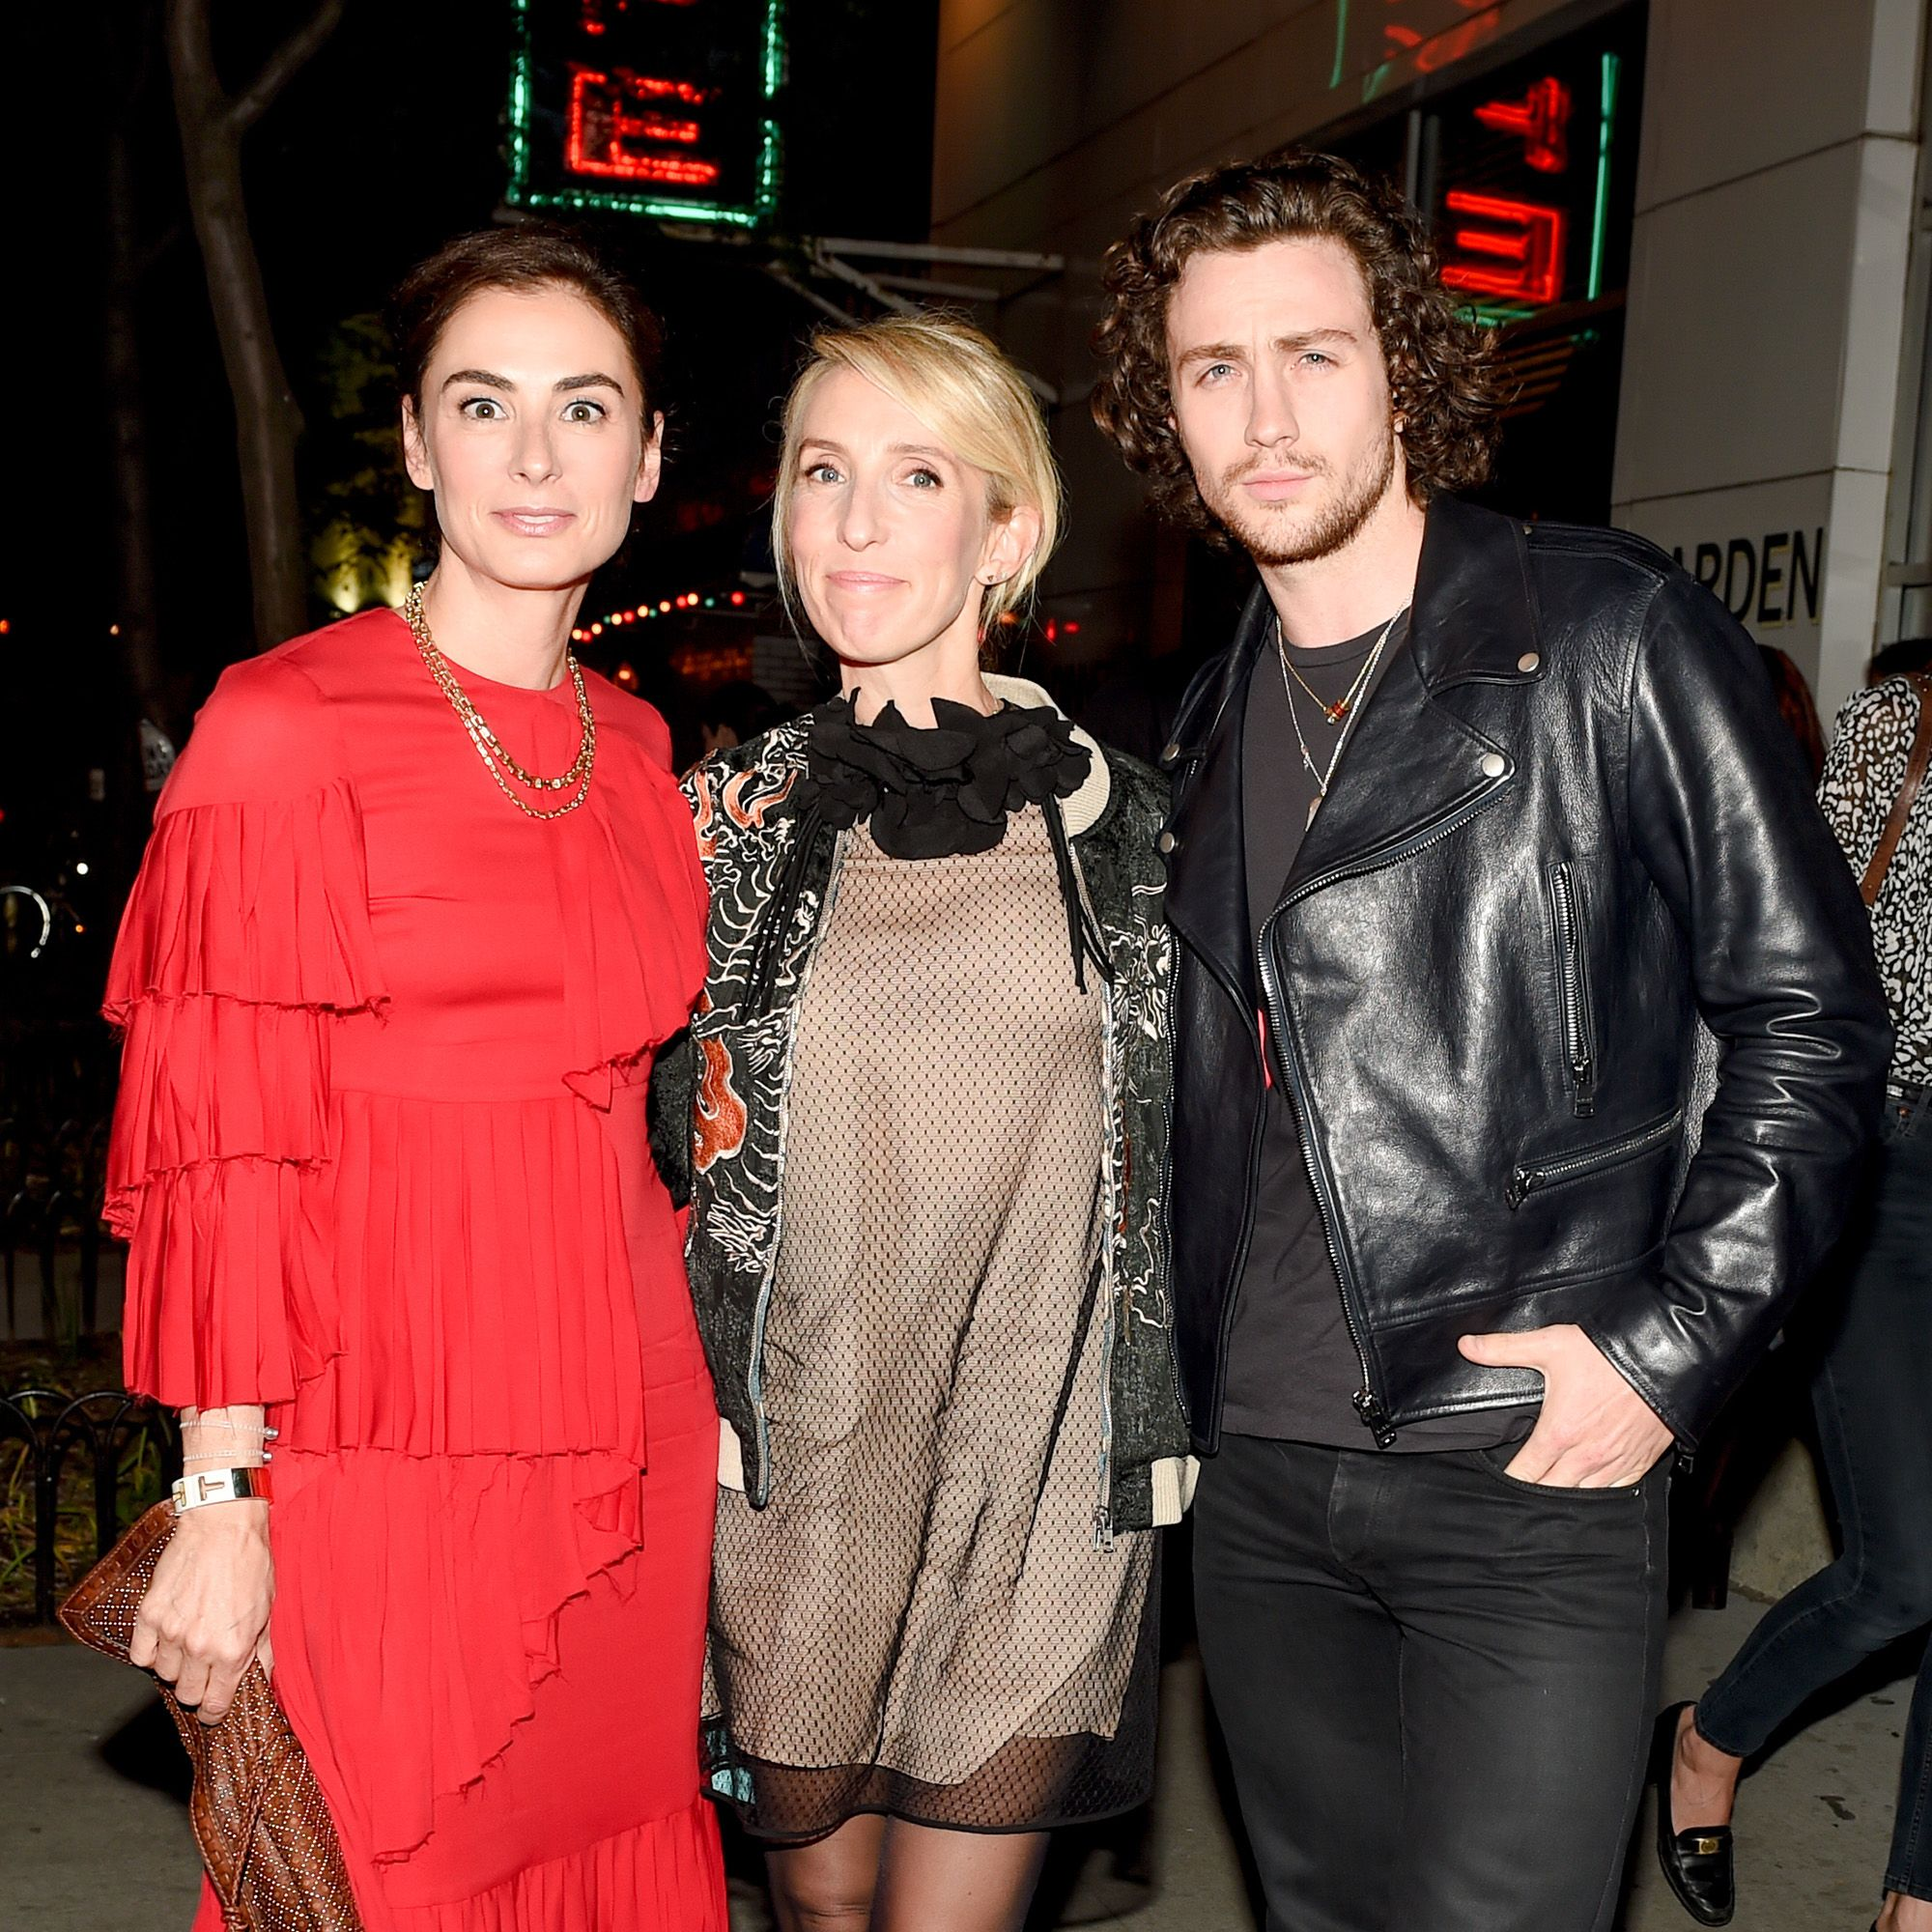 Francesca Amfitheatrof, Sam Taylor-Johnson, Aaron Taylor-Johnson